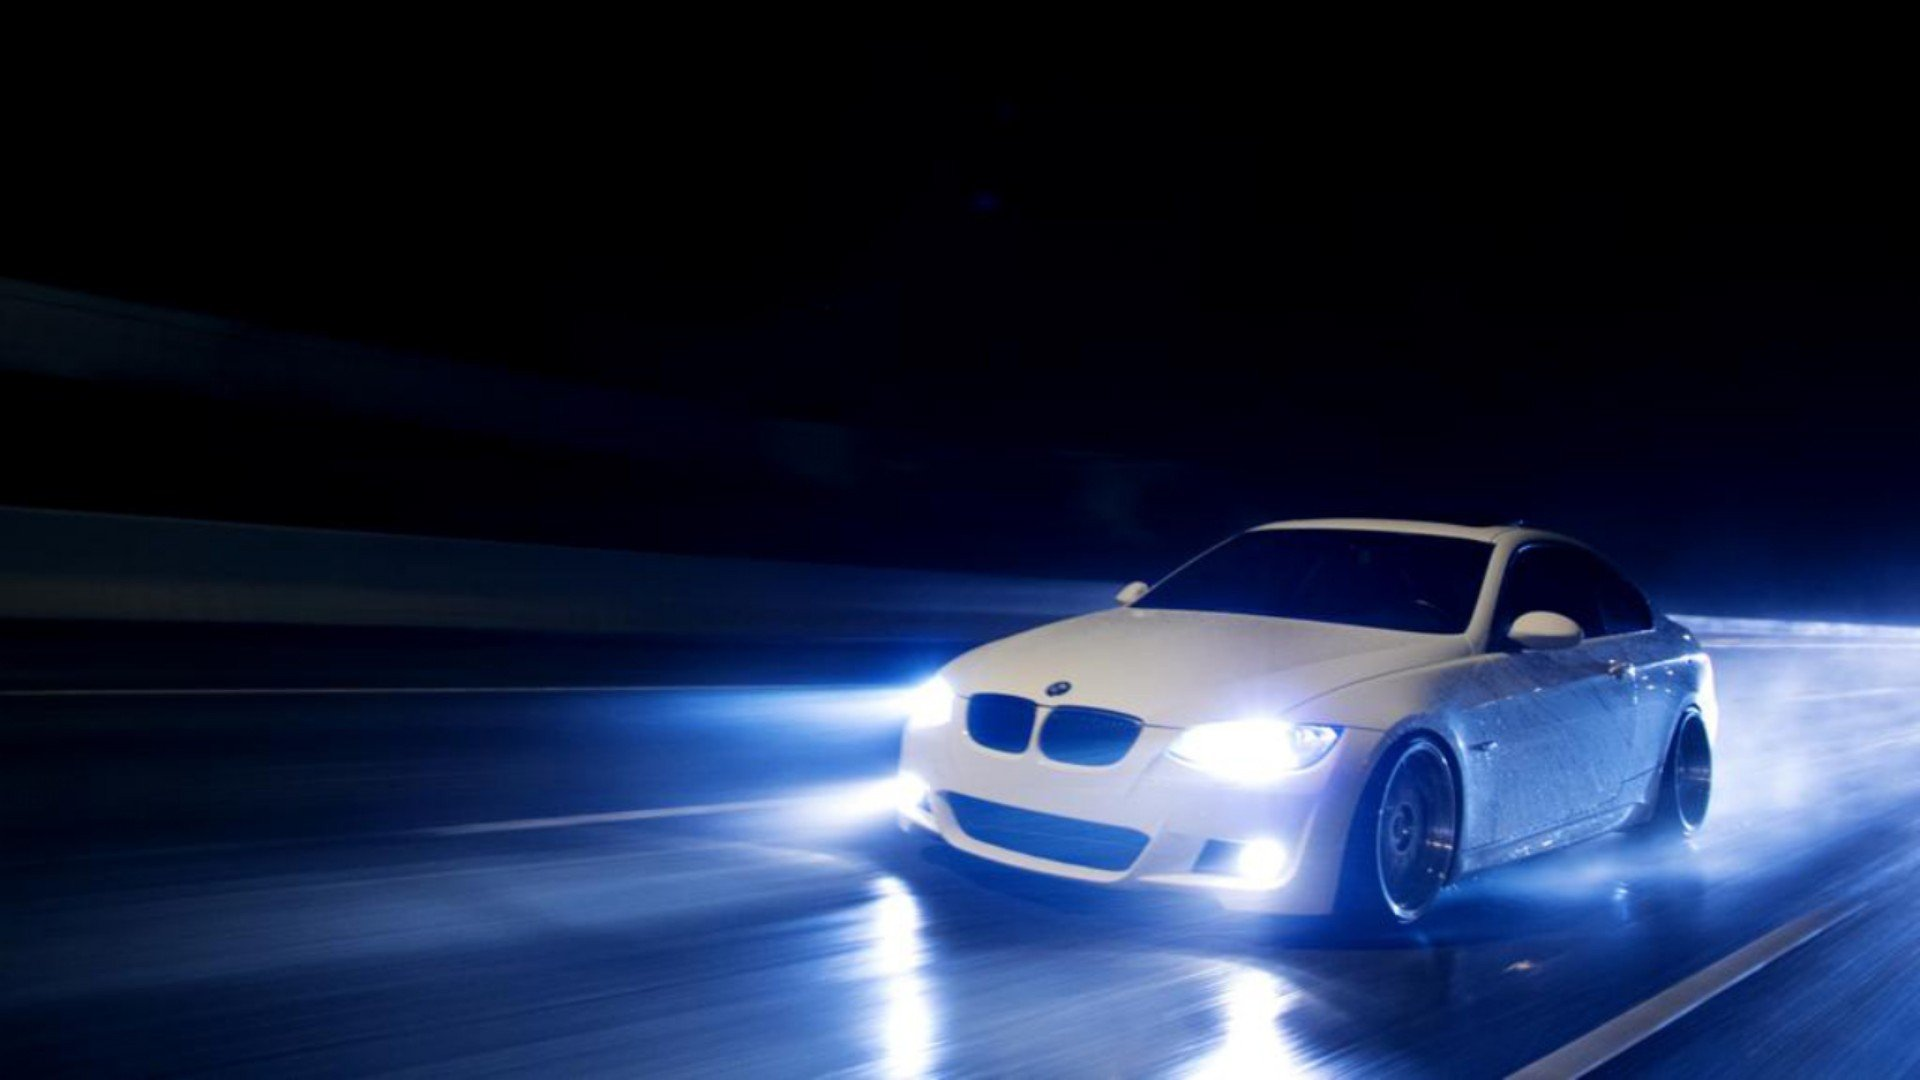 bmw night lights rain cars bmw e92 wallpaper 1920x1080 295630 wallpaperup. Black Bedroom Furniture Sets. Home Design Ideas